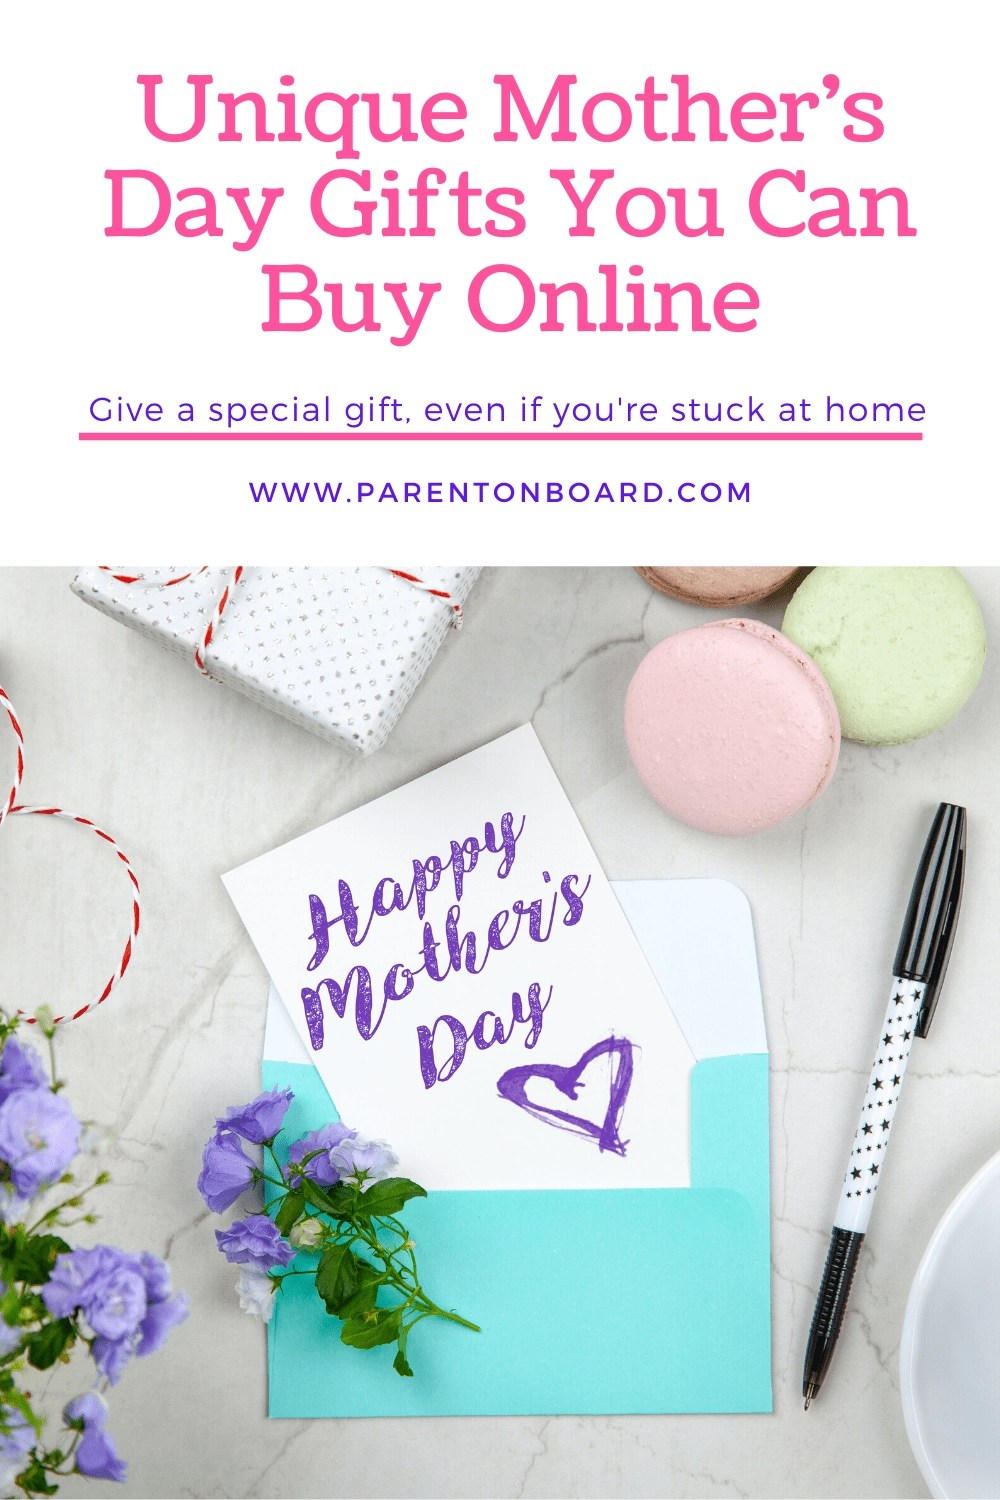 Unique Mother's Day Gifts You Can Buy Online